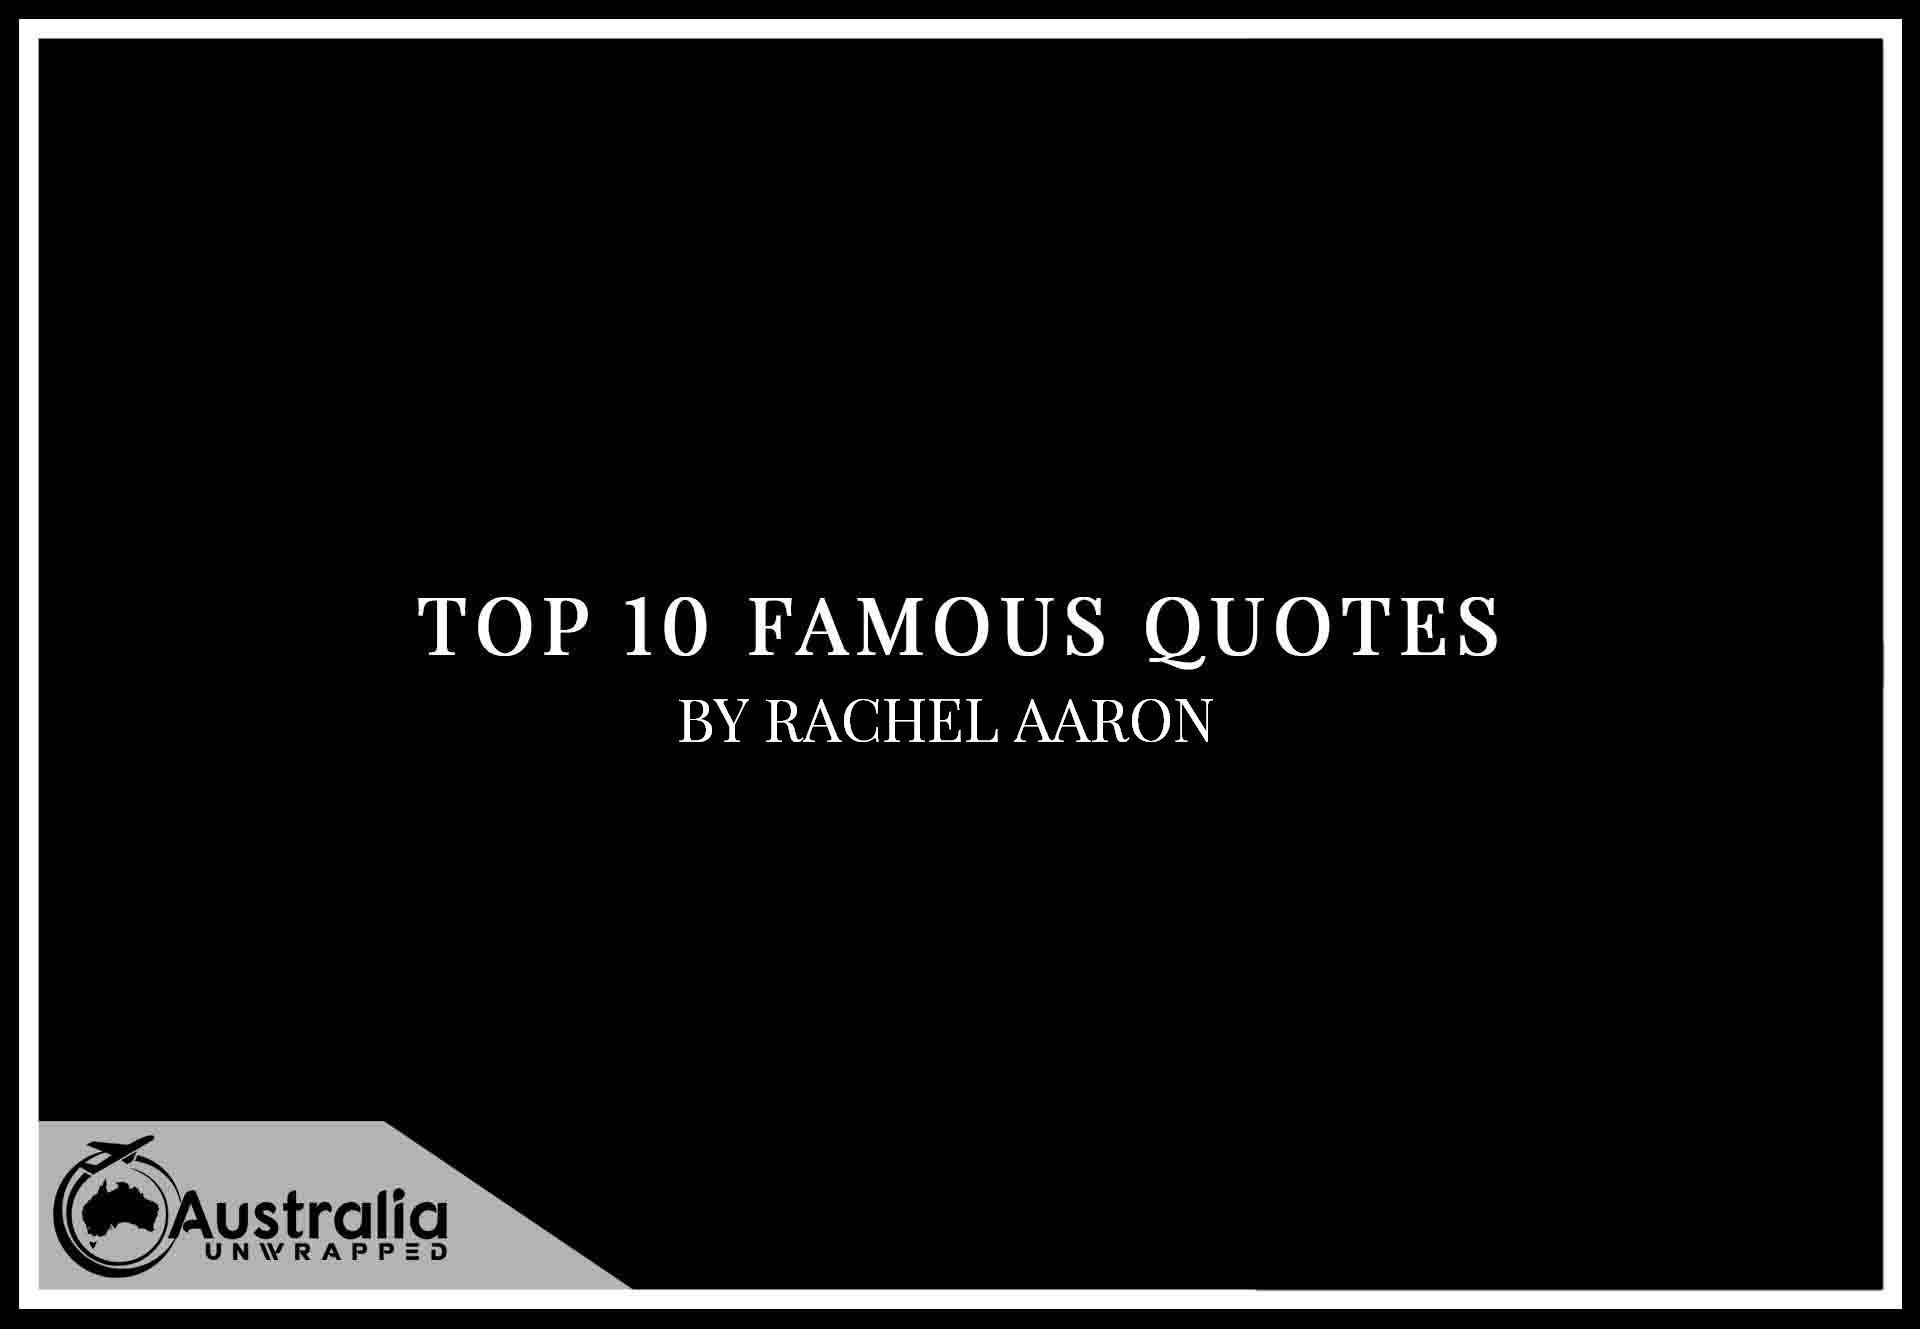 Top 10 Famous Quotes by Author Rachel Aaron